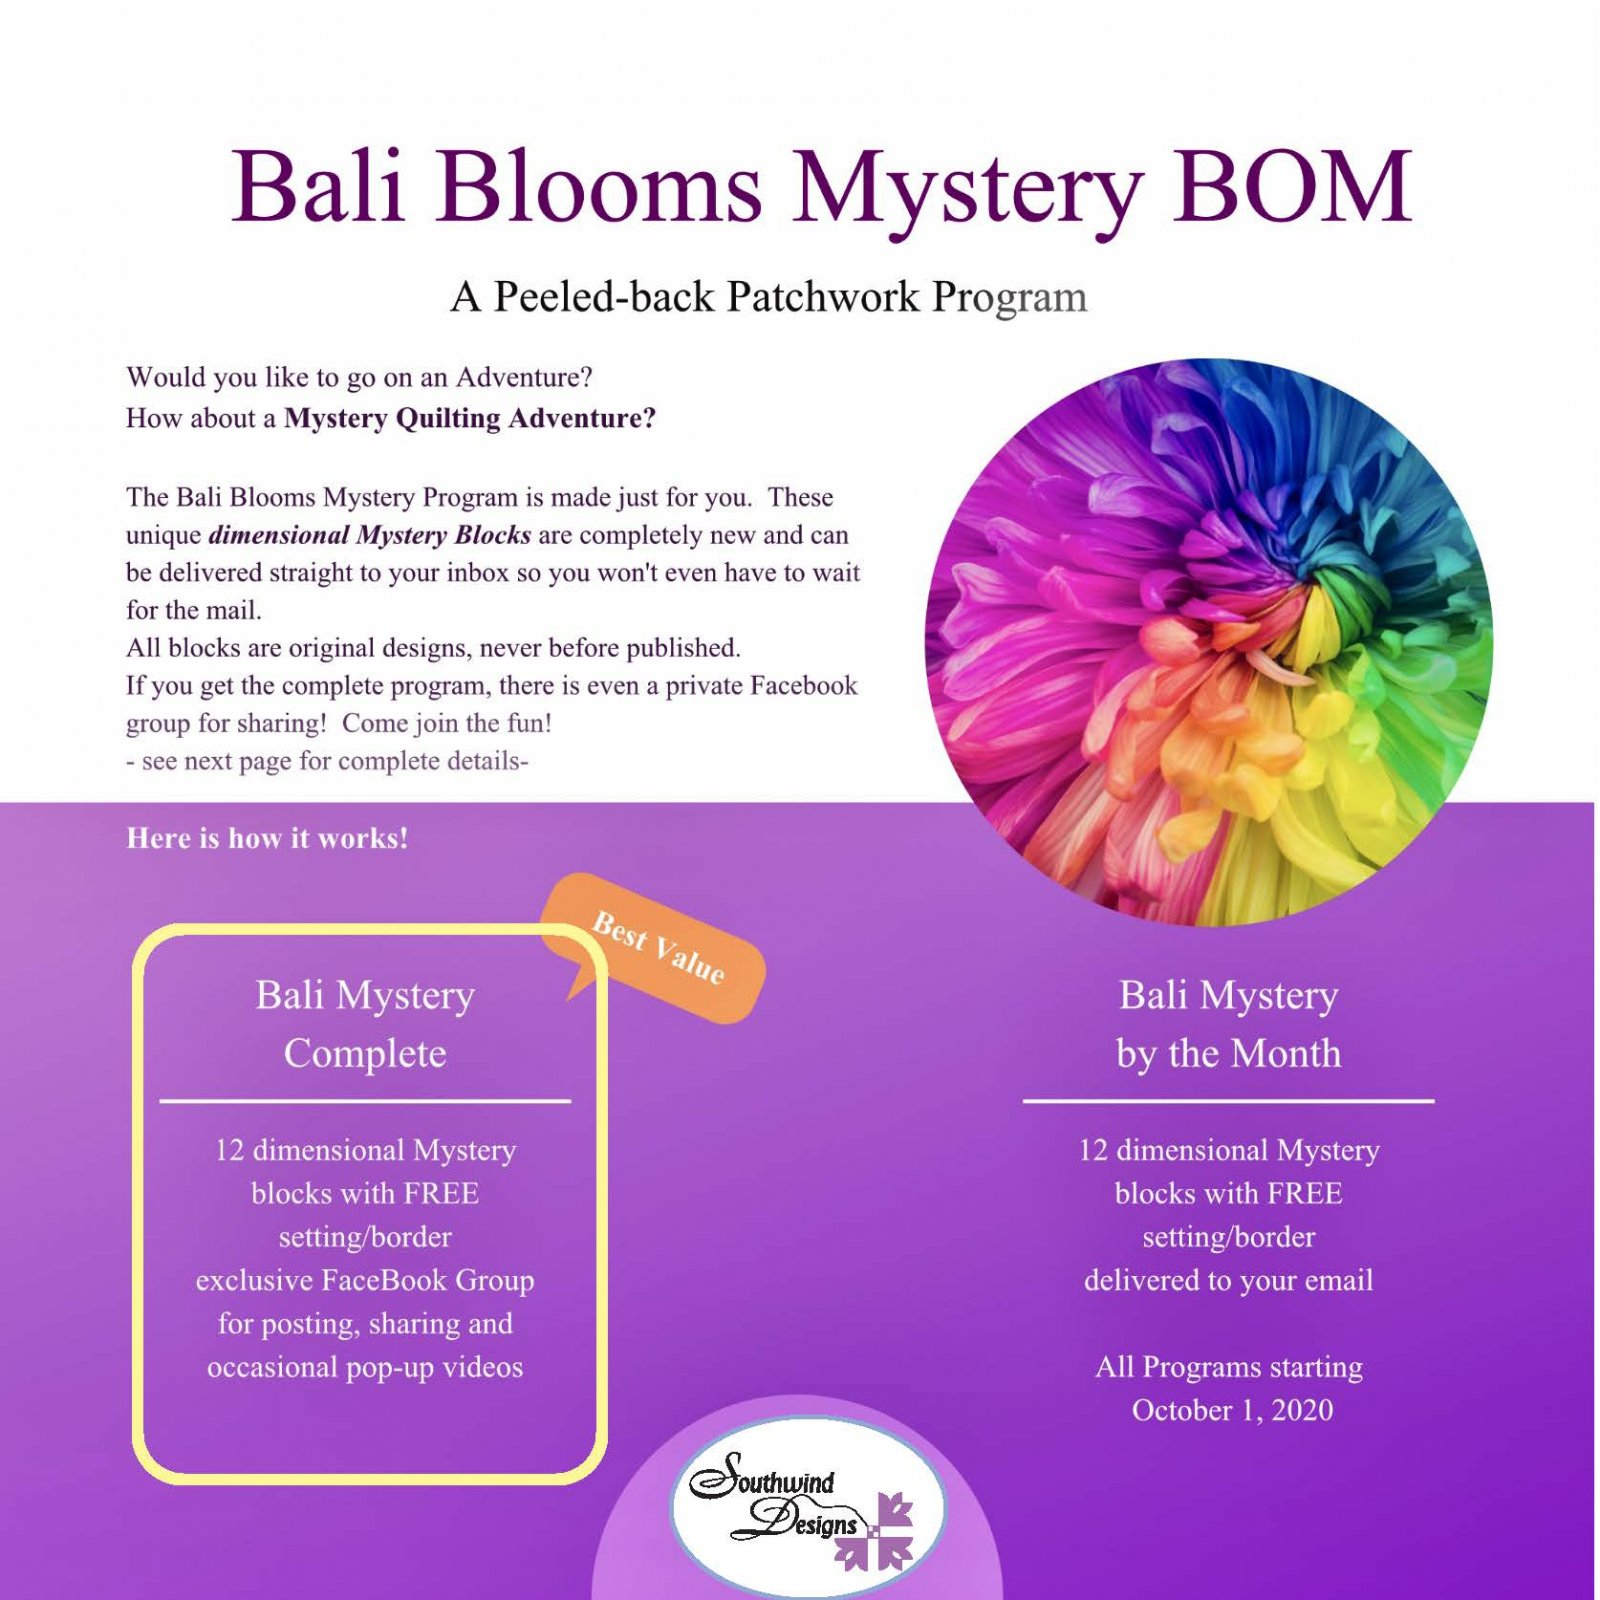 Bali Blooms Mystery BOM